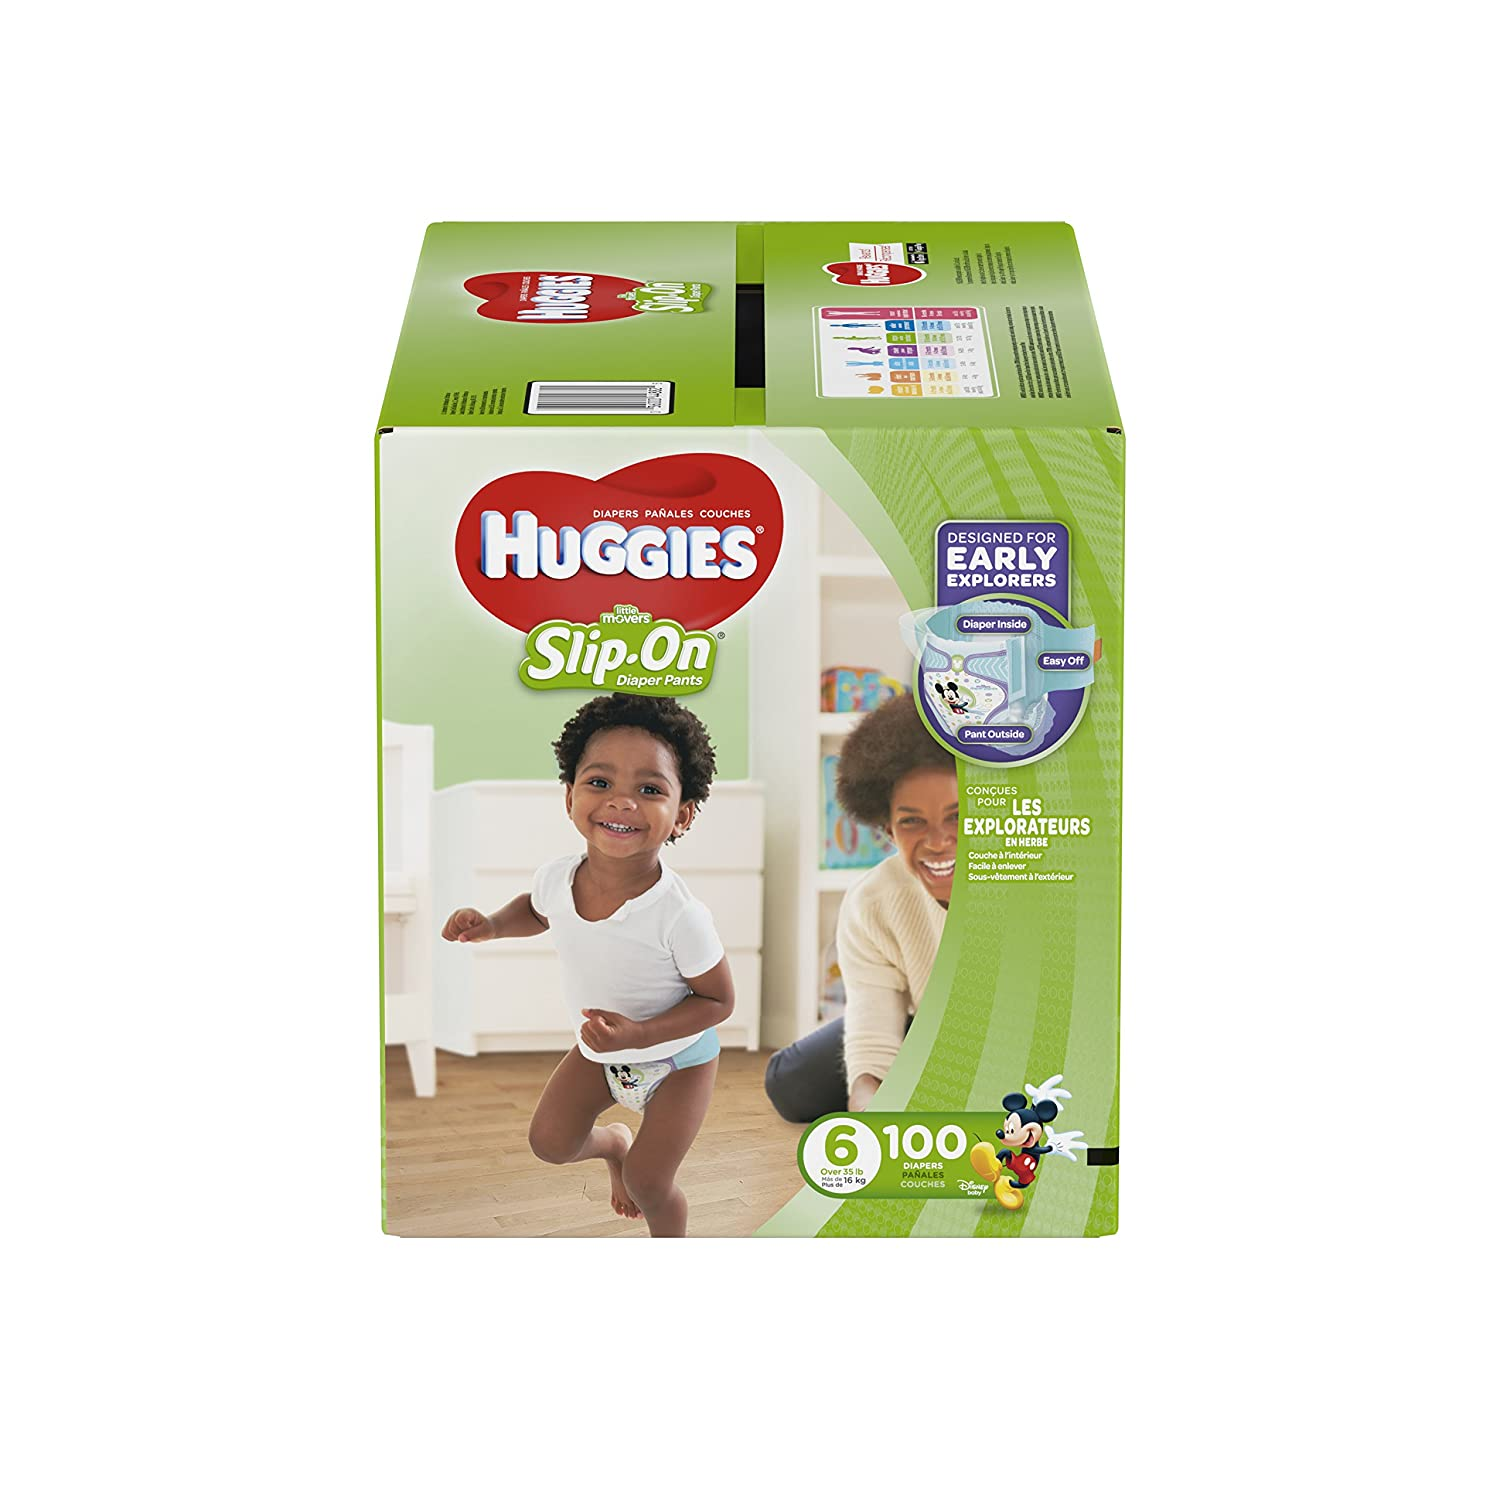 HUGGIES LITTLE MOVERS Slip-On Baby Diapers, Size 4, 148ct Kimberly-Clark Corp. CA 37301